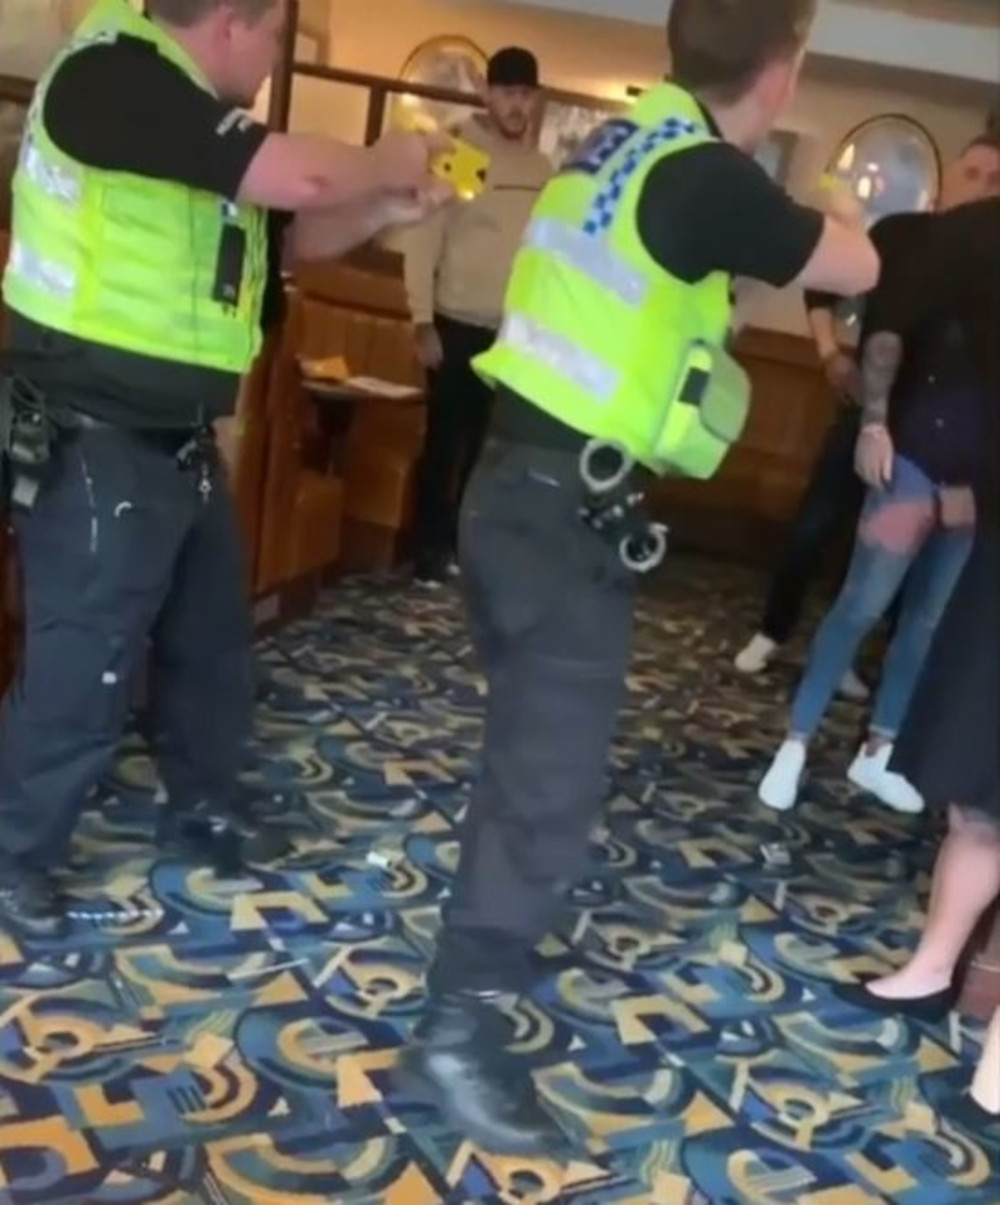 The police brandish tasers at the attackers - Police News UK